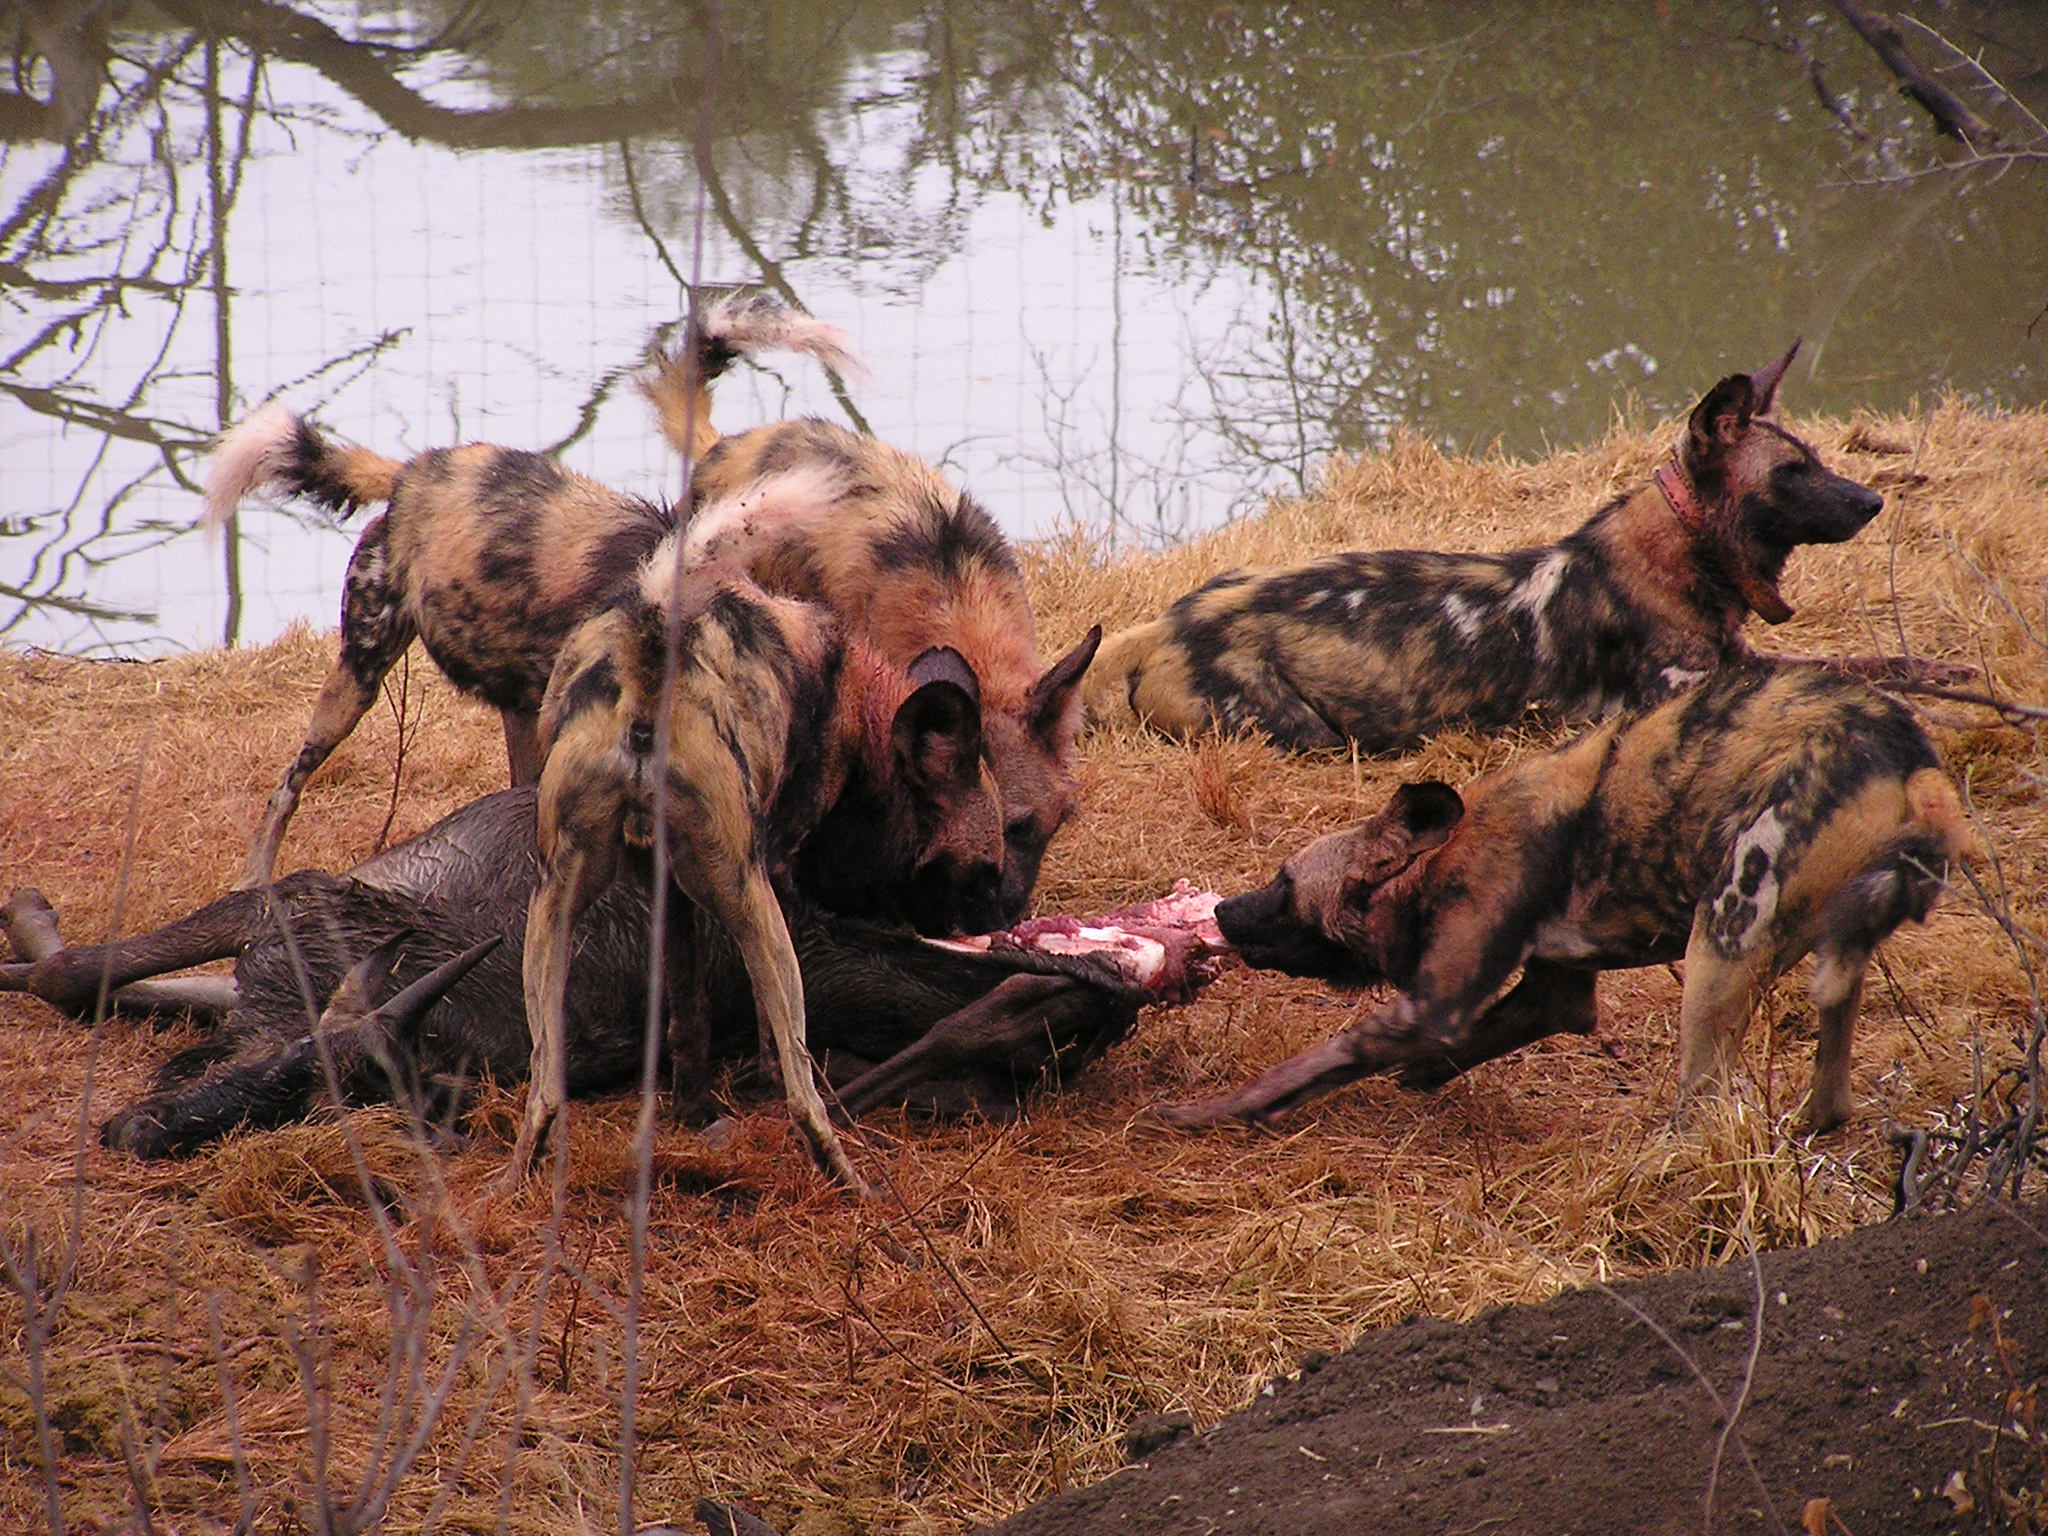 http://upload.wikimedia.org/wikipedia/commons/4/45/African_wild_dog3.jpg